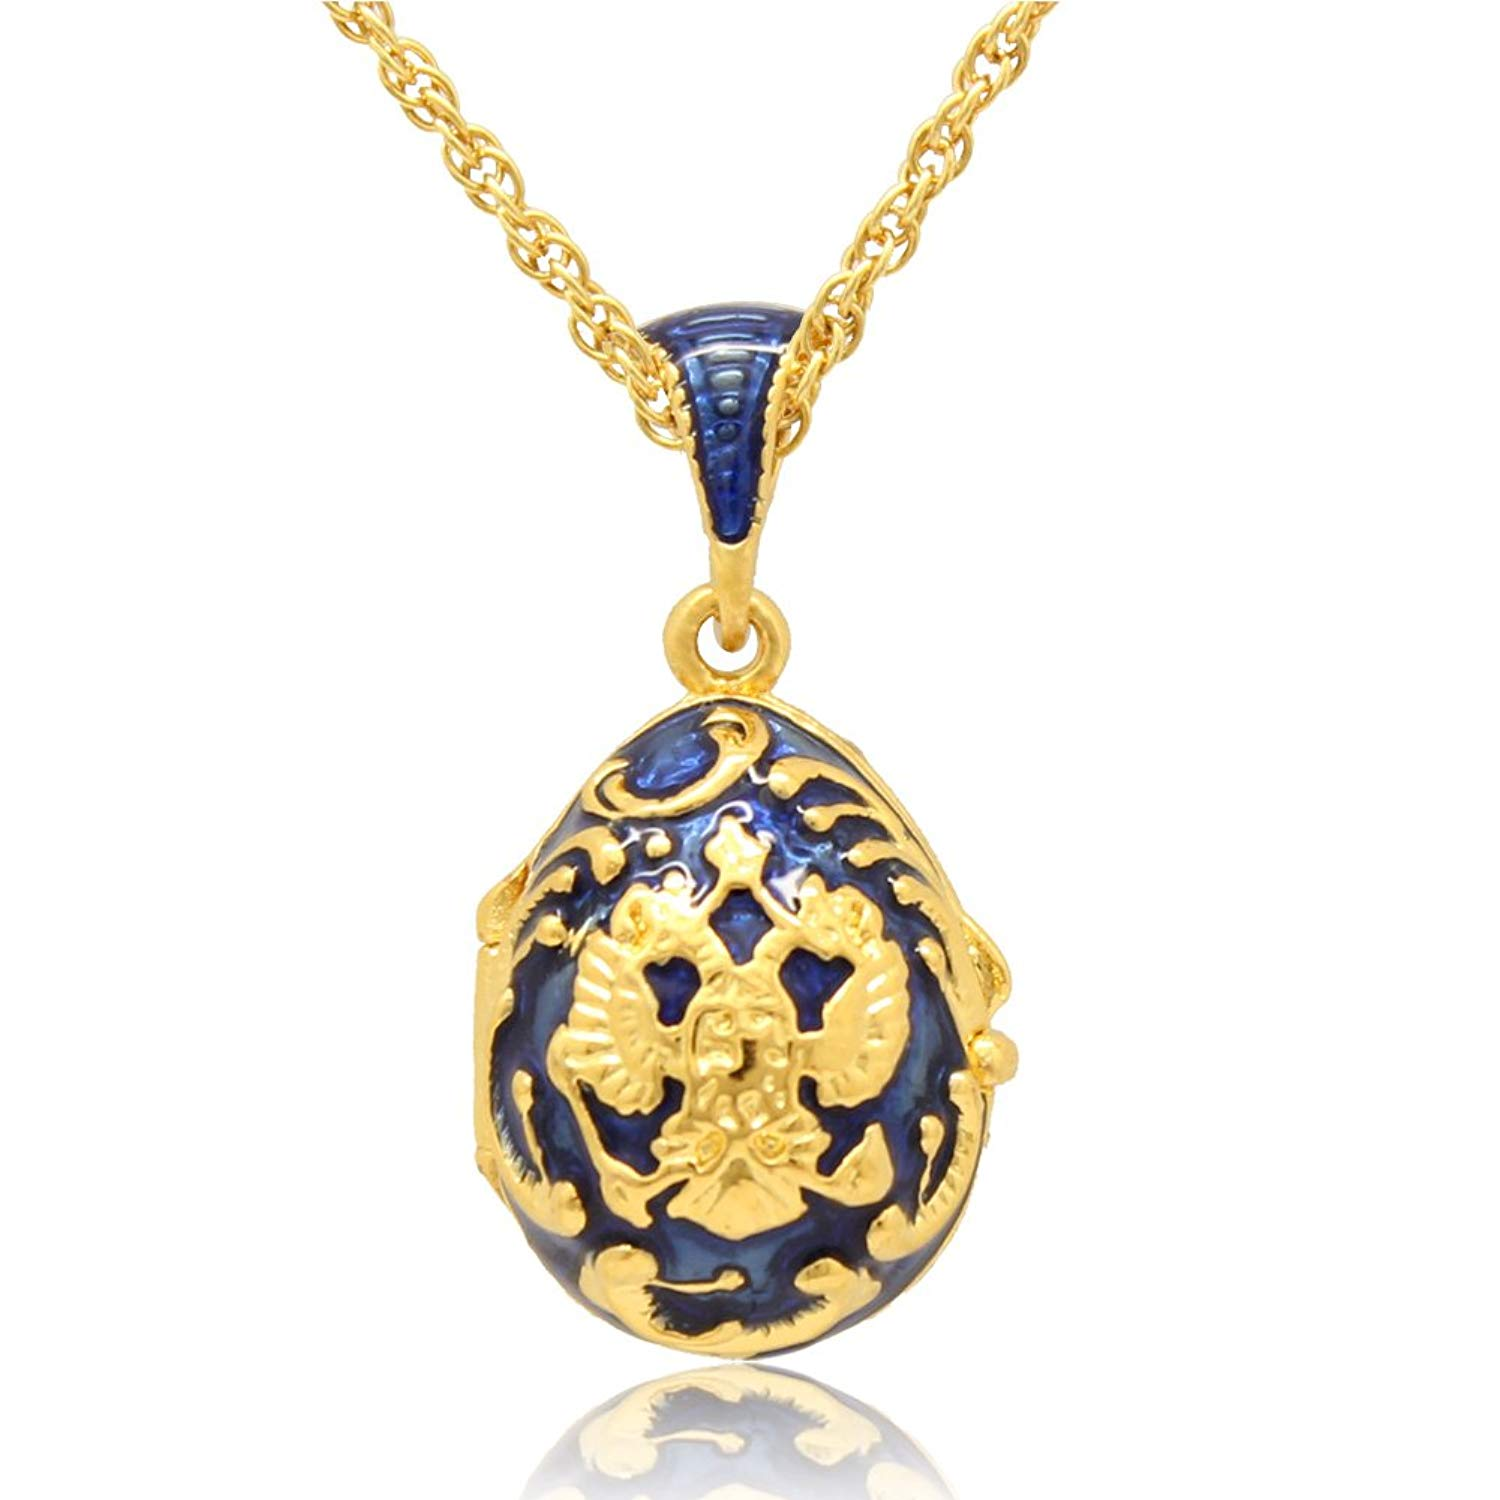 MYD Jewelry Hand Enamel Crystal Russian Coat of Arms Faberge Egg Locket Pendant Necklace Chain Included